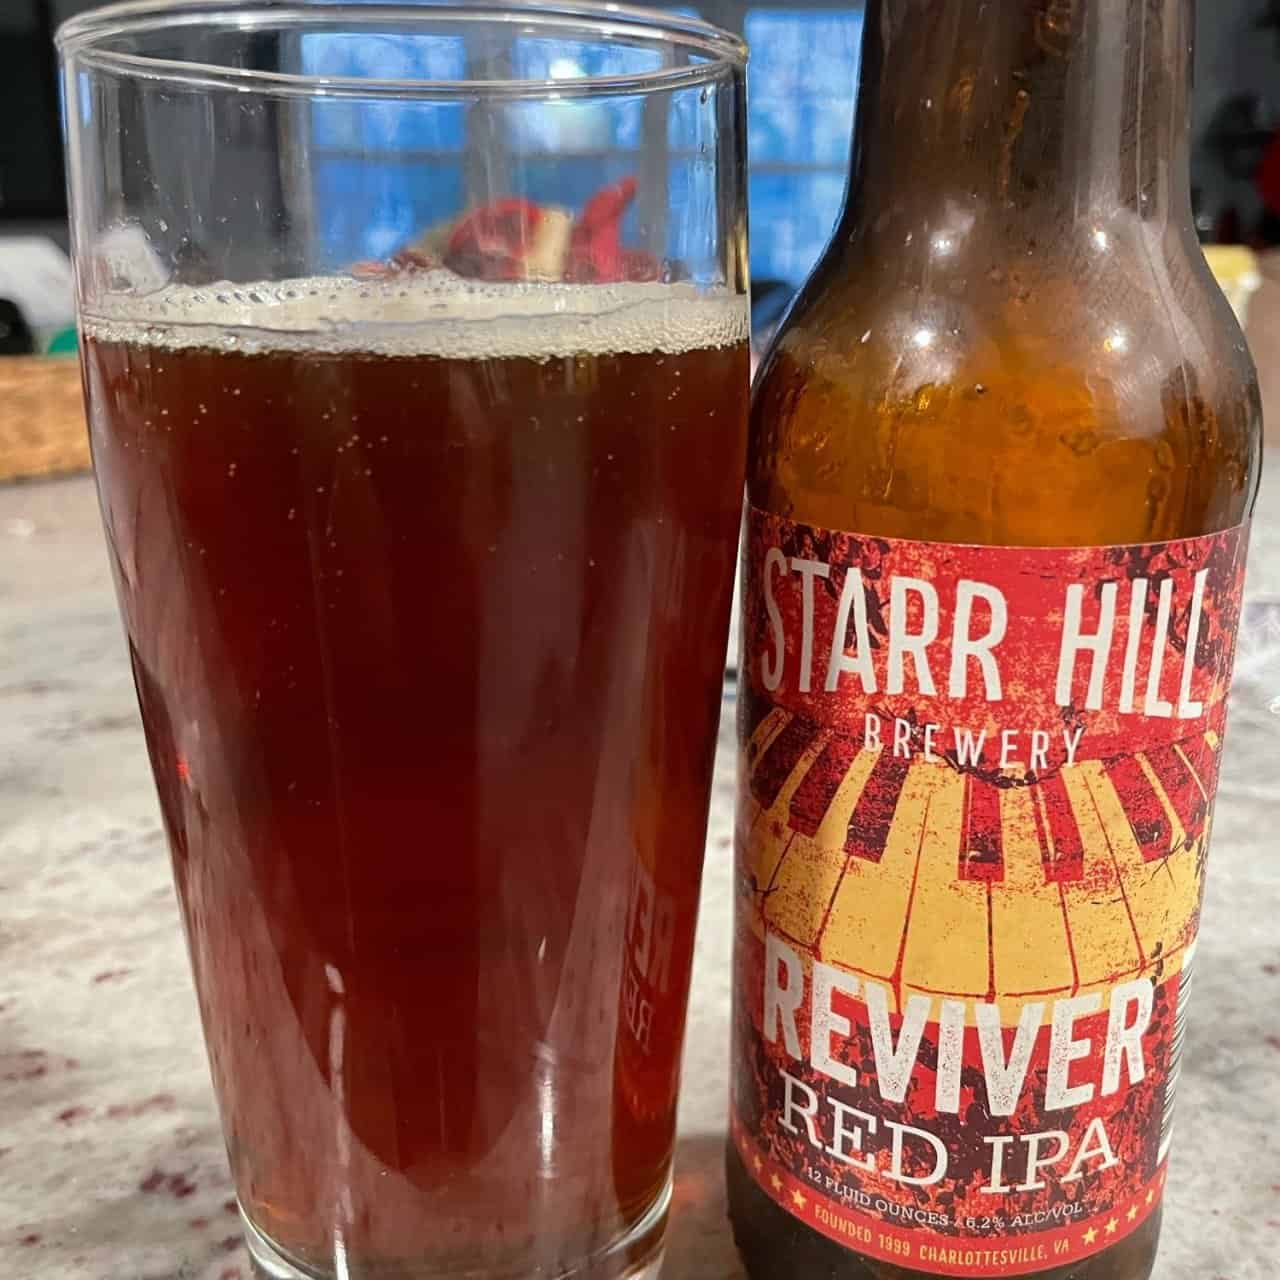 Reviver Red IPA